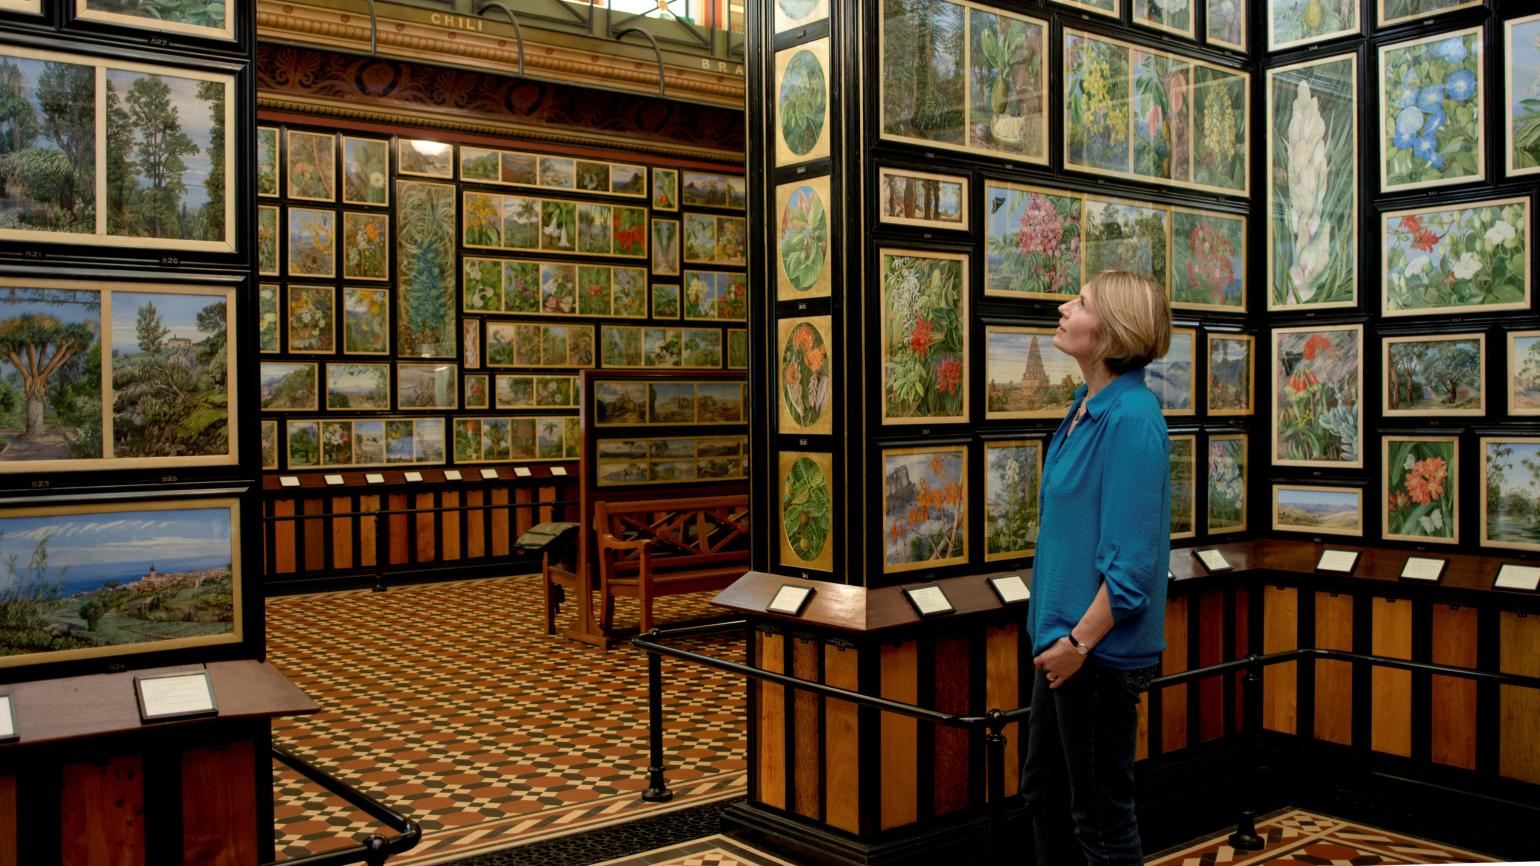 A visitor admiring the collection in the Marianne North Gallery